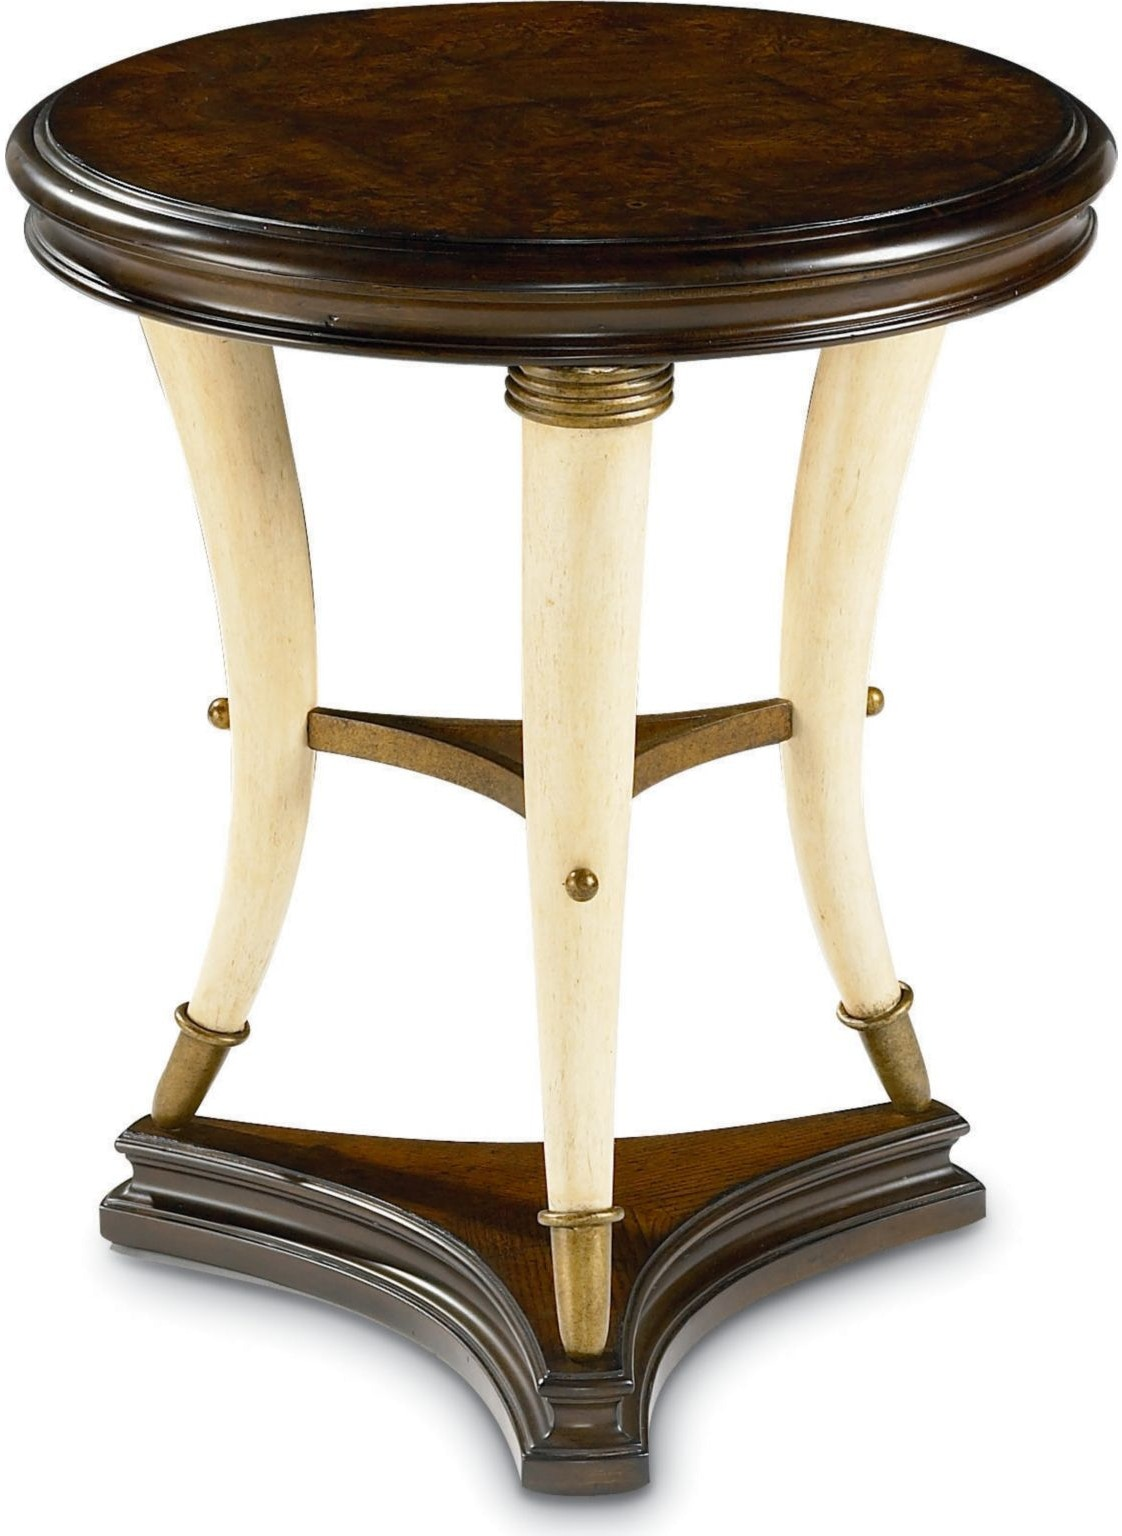 Thomasville Living Room Hunt Club Accent Table 46291 455